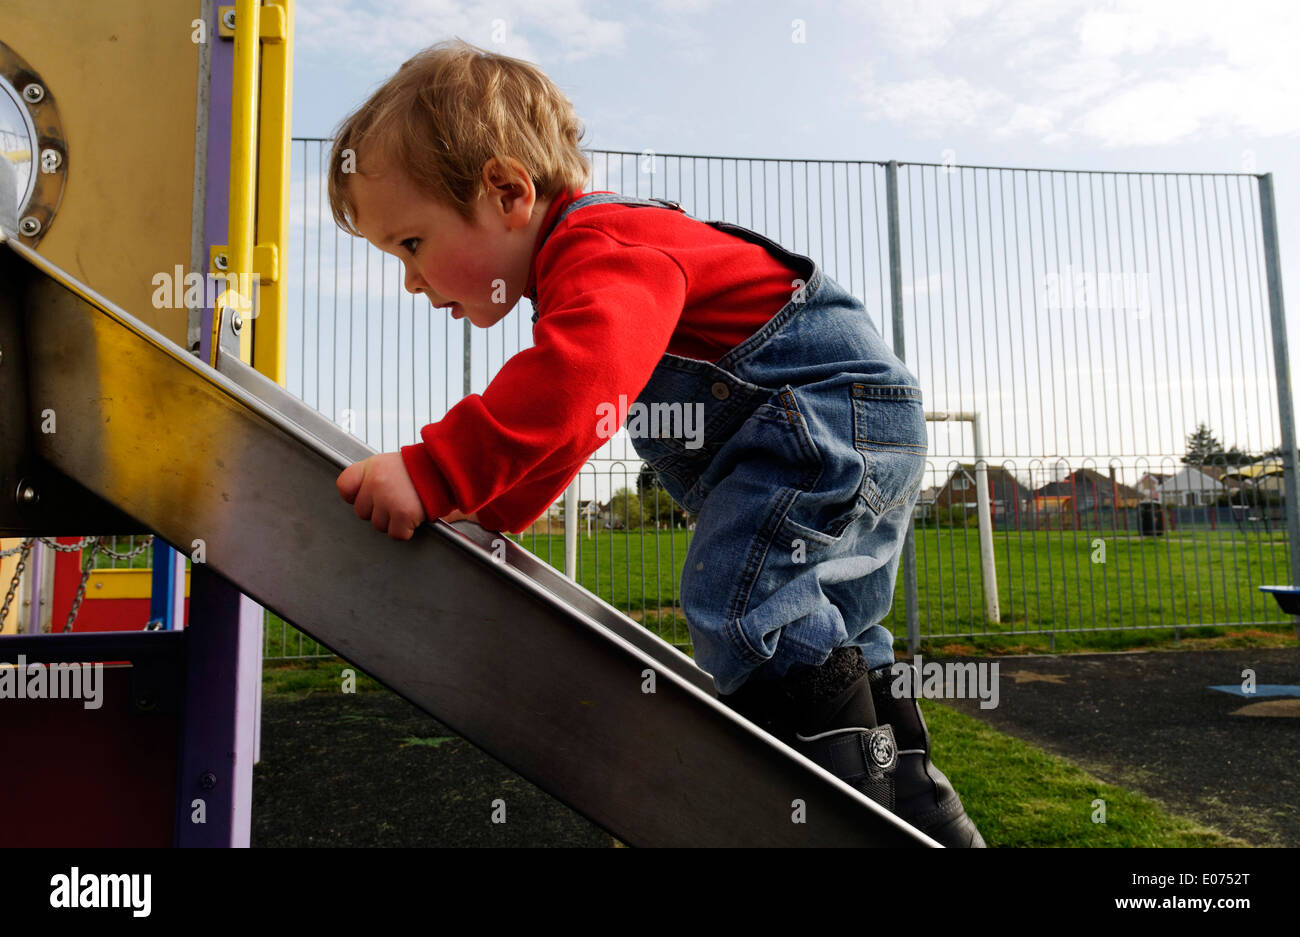 A two year old boy playing on a slide in a playground - Stock Image